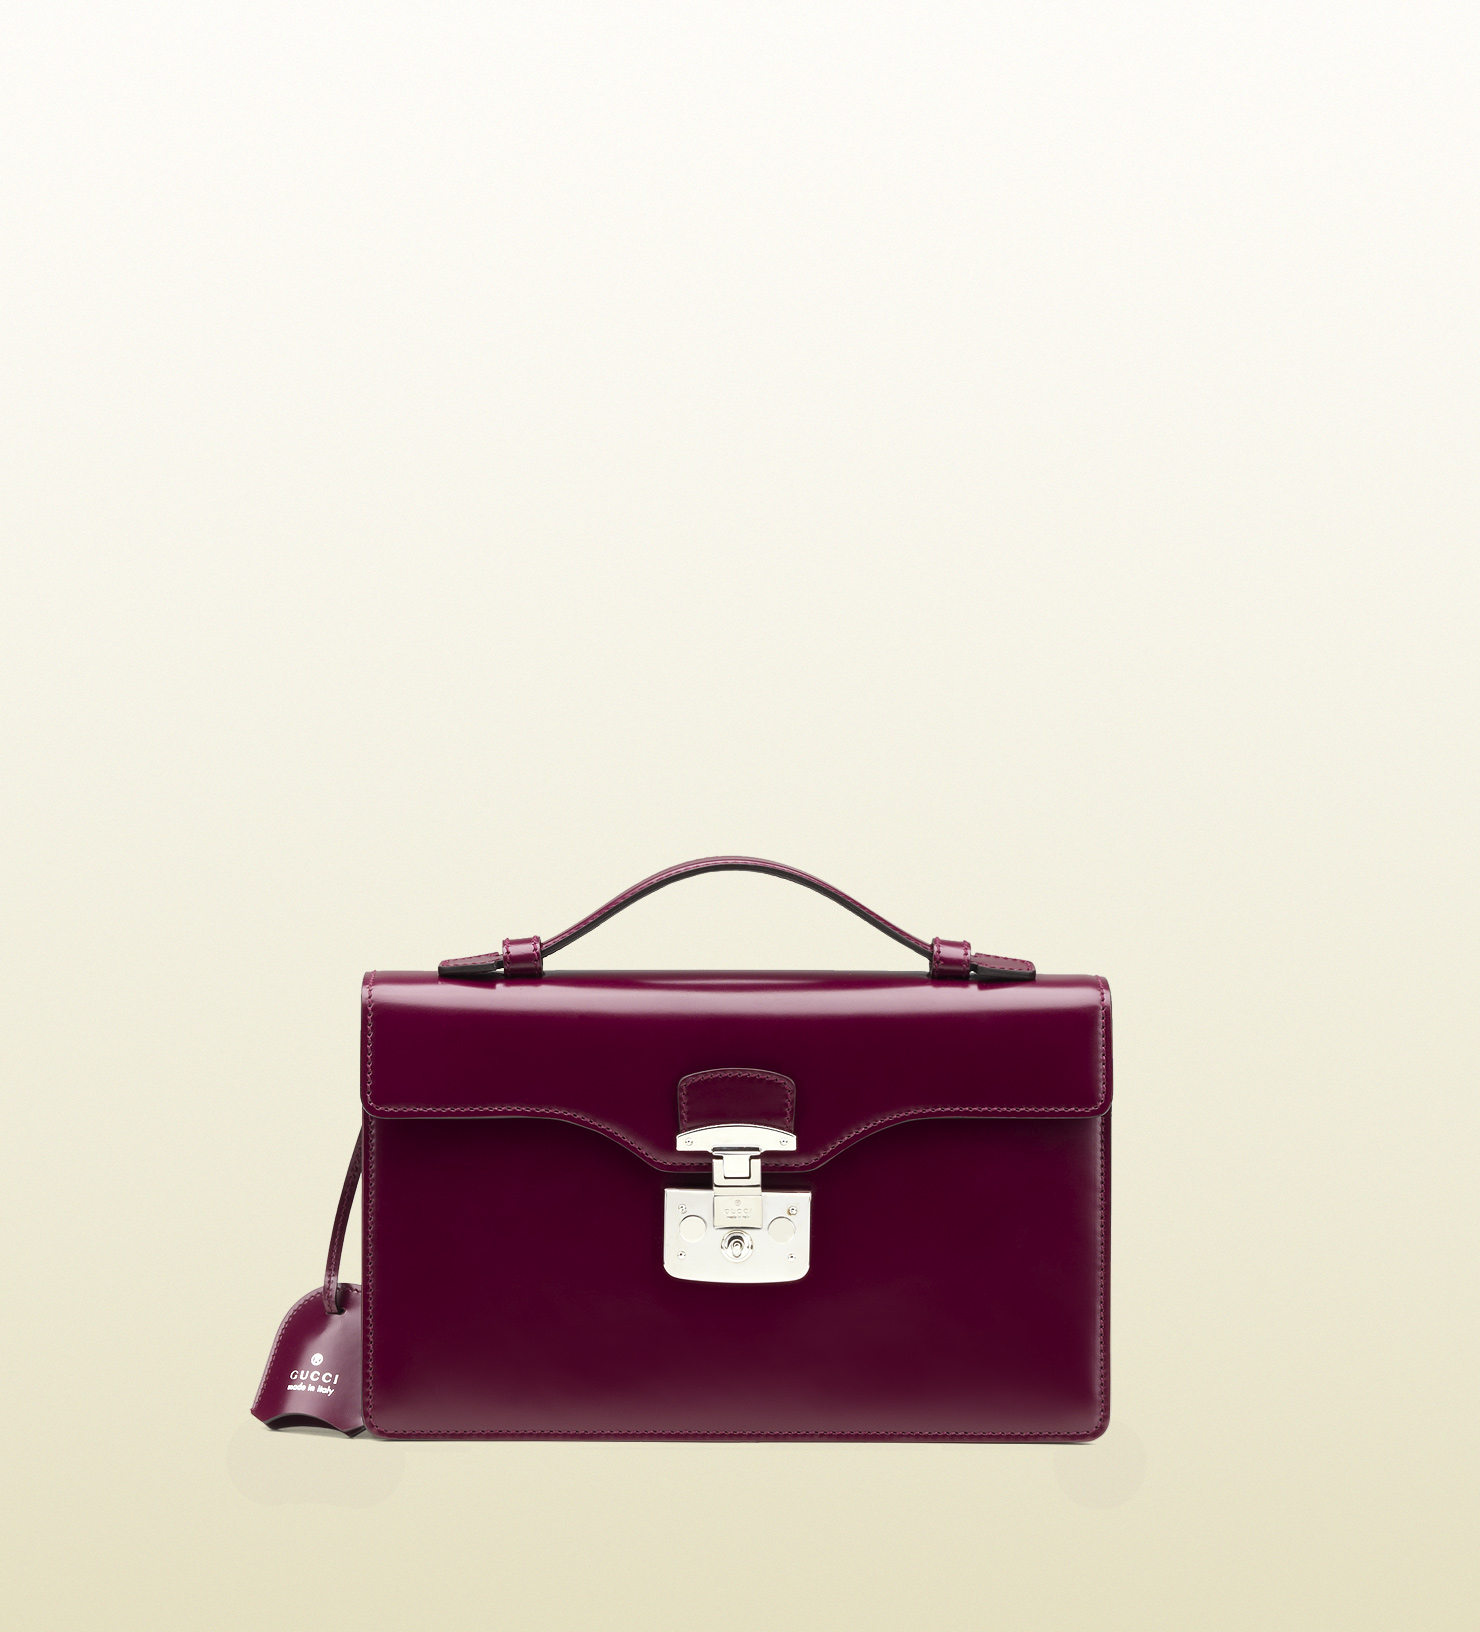 5a2d21b172c Lyst - Gucci Lady Lock Leather Briefcase Clutch in Purple